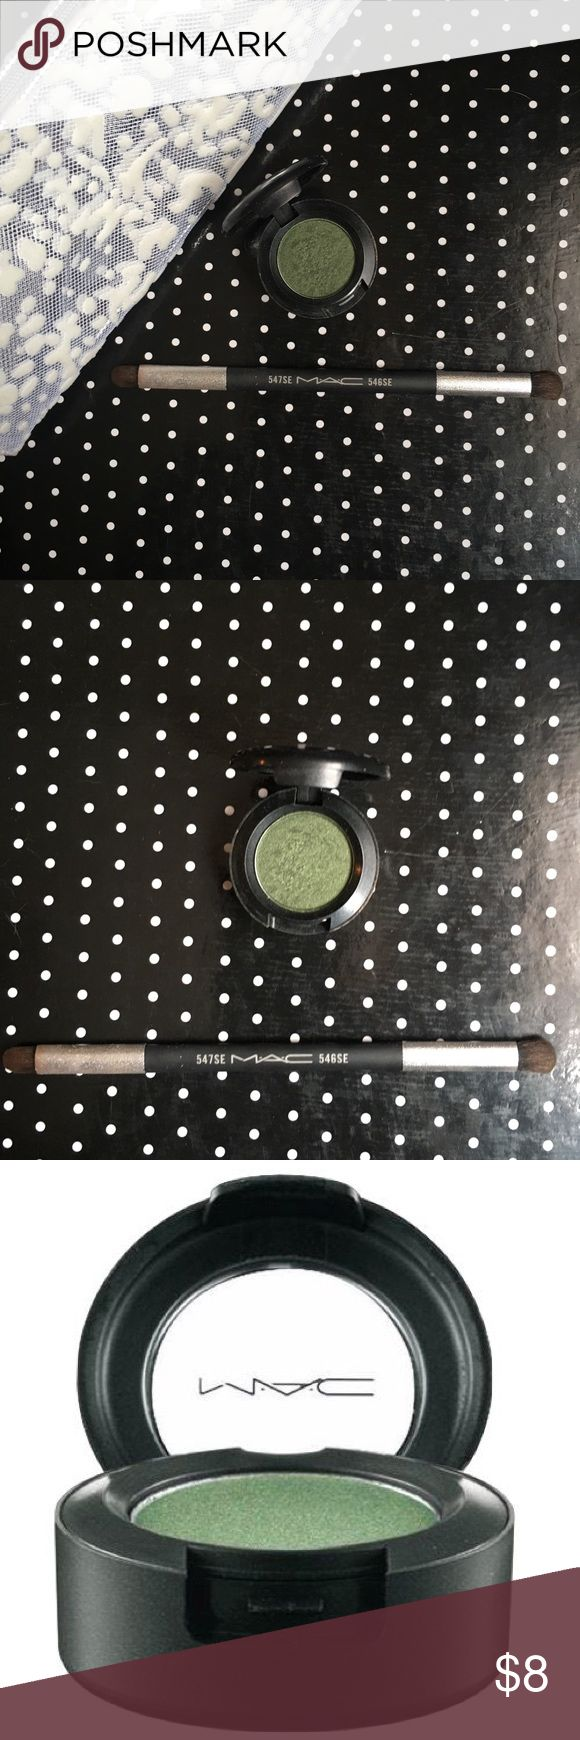 GUC MAC Eyeshadow in Humid Gorgeous Authentic MAC eyeshadow in humid used only a couple times. Sparkly 🌟 green color that is beautiful on the 👁. Bundle 3 makeup items for a free MAC makeup bag free with purchase (bag shown in picture). MAC Cosmetics Makeup Eyeshadow